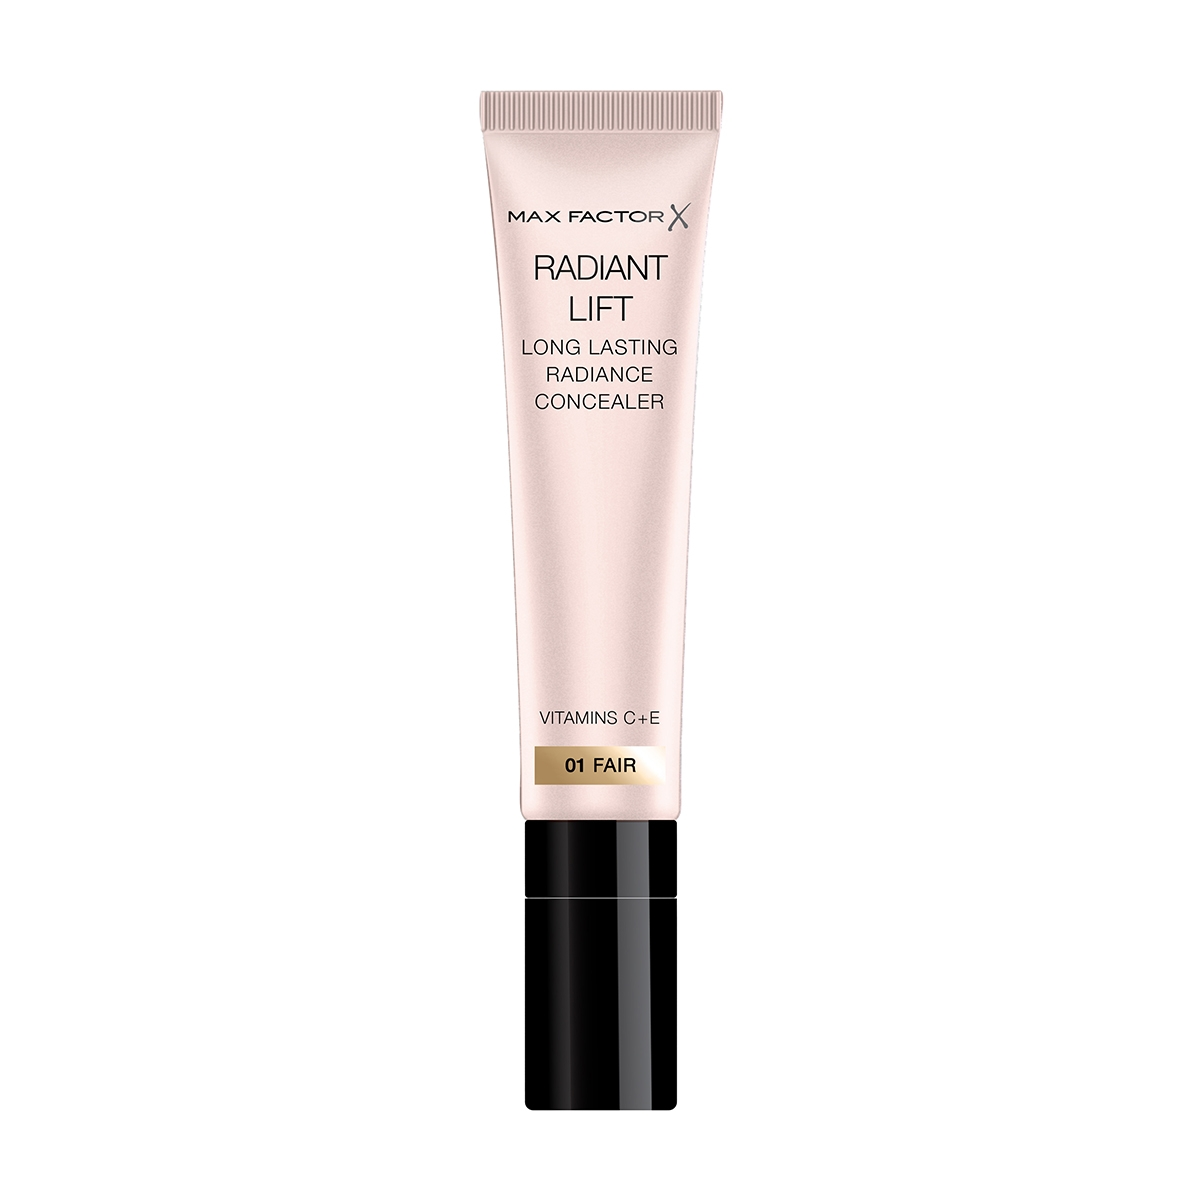 RADIANT LIFT CONCEALER 01 Fair image02